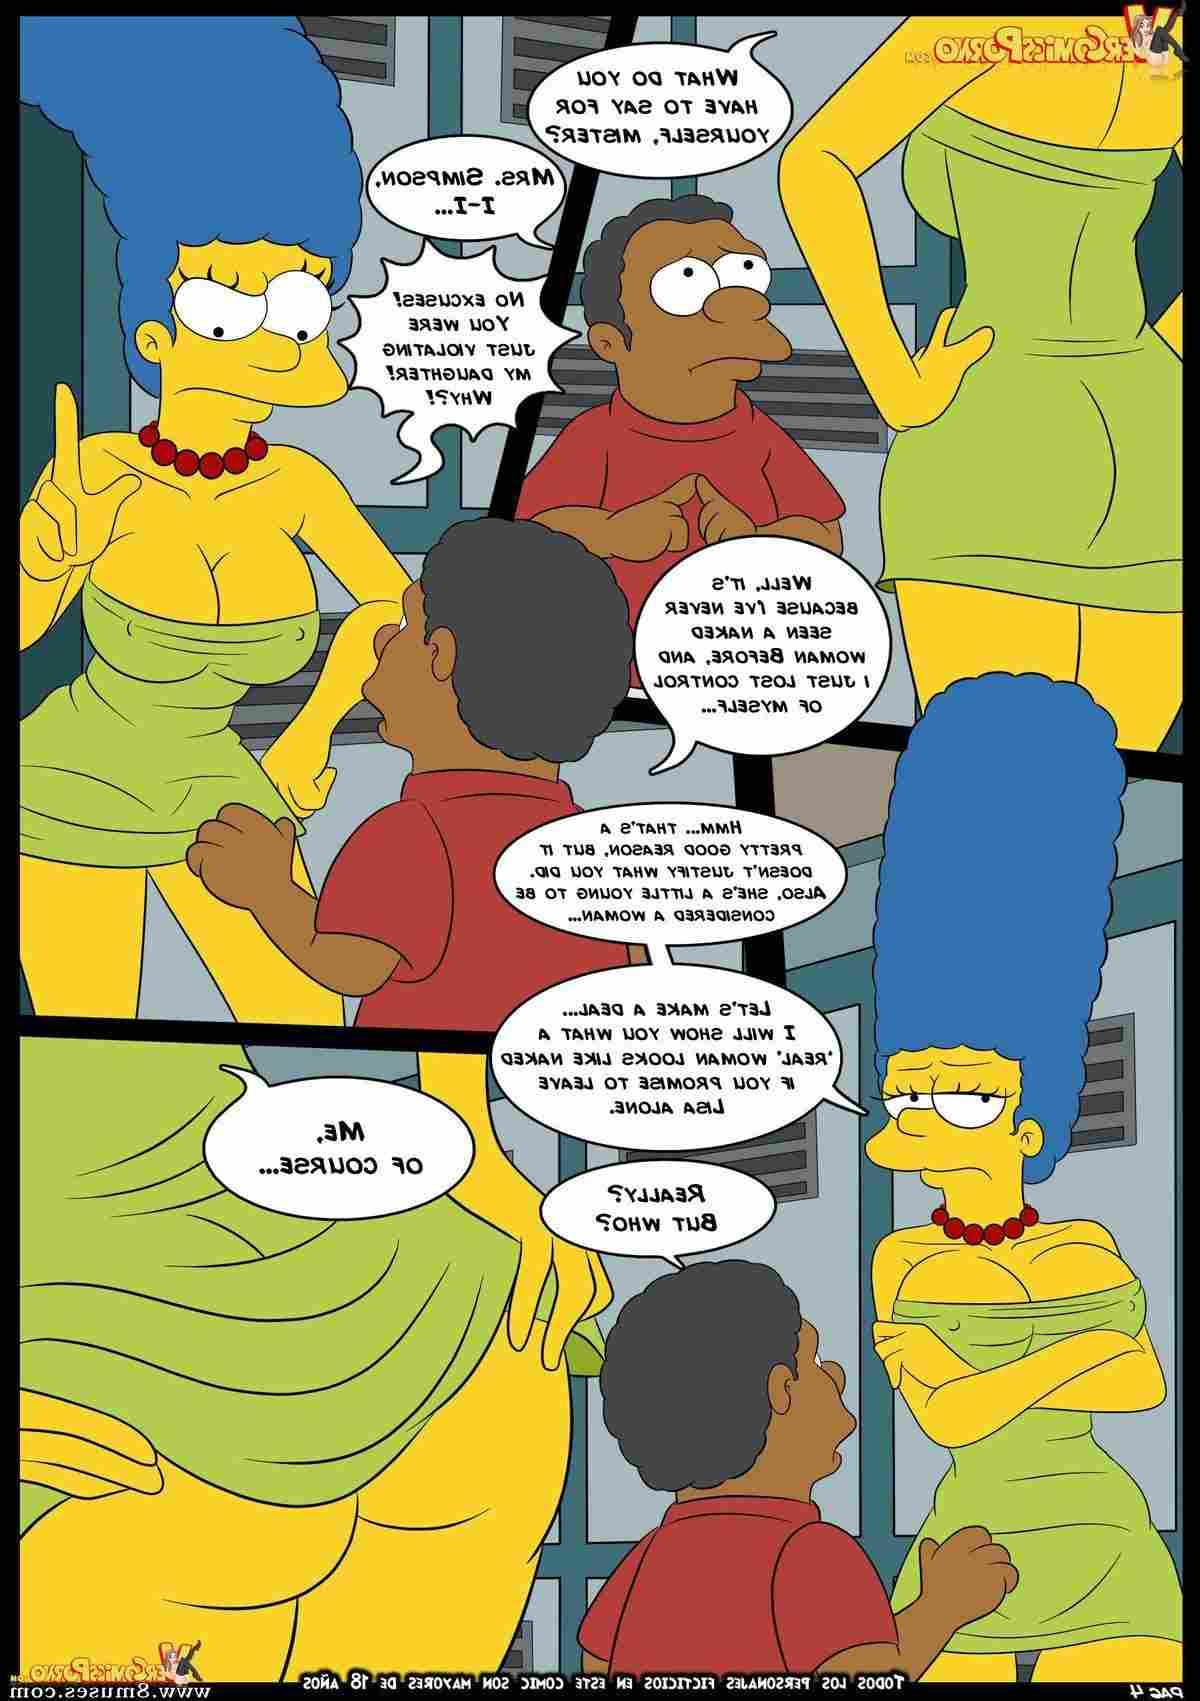 Croc-Comics/The-Simpsons-Love-for-the-Bully The_Simpsons_-_Love_for_the_Bully__8muses_-_Sex_and_Porn_Comics_5.jpg